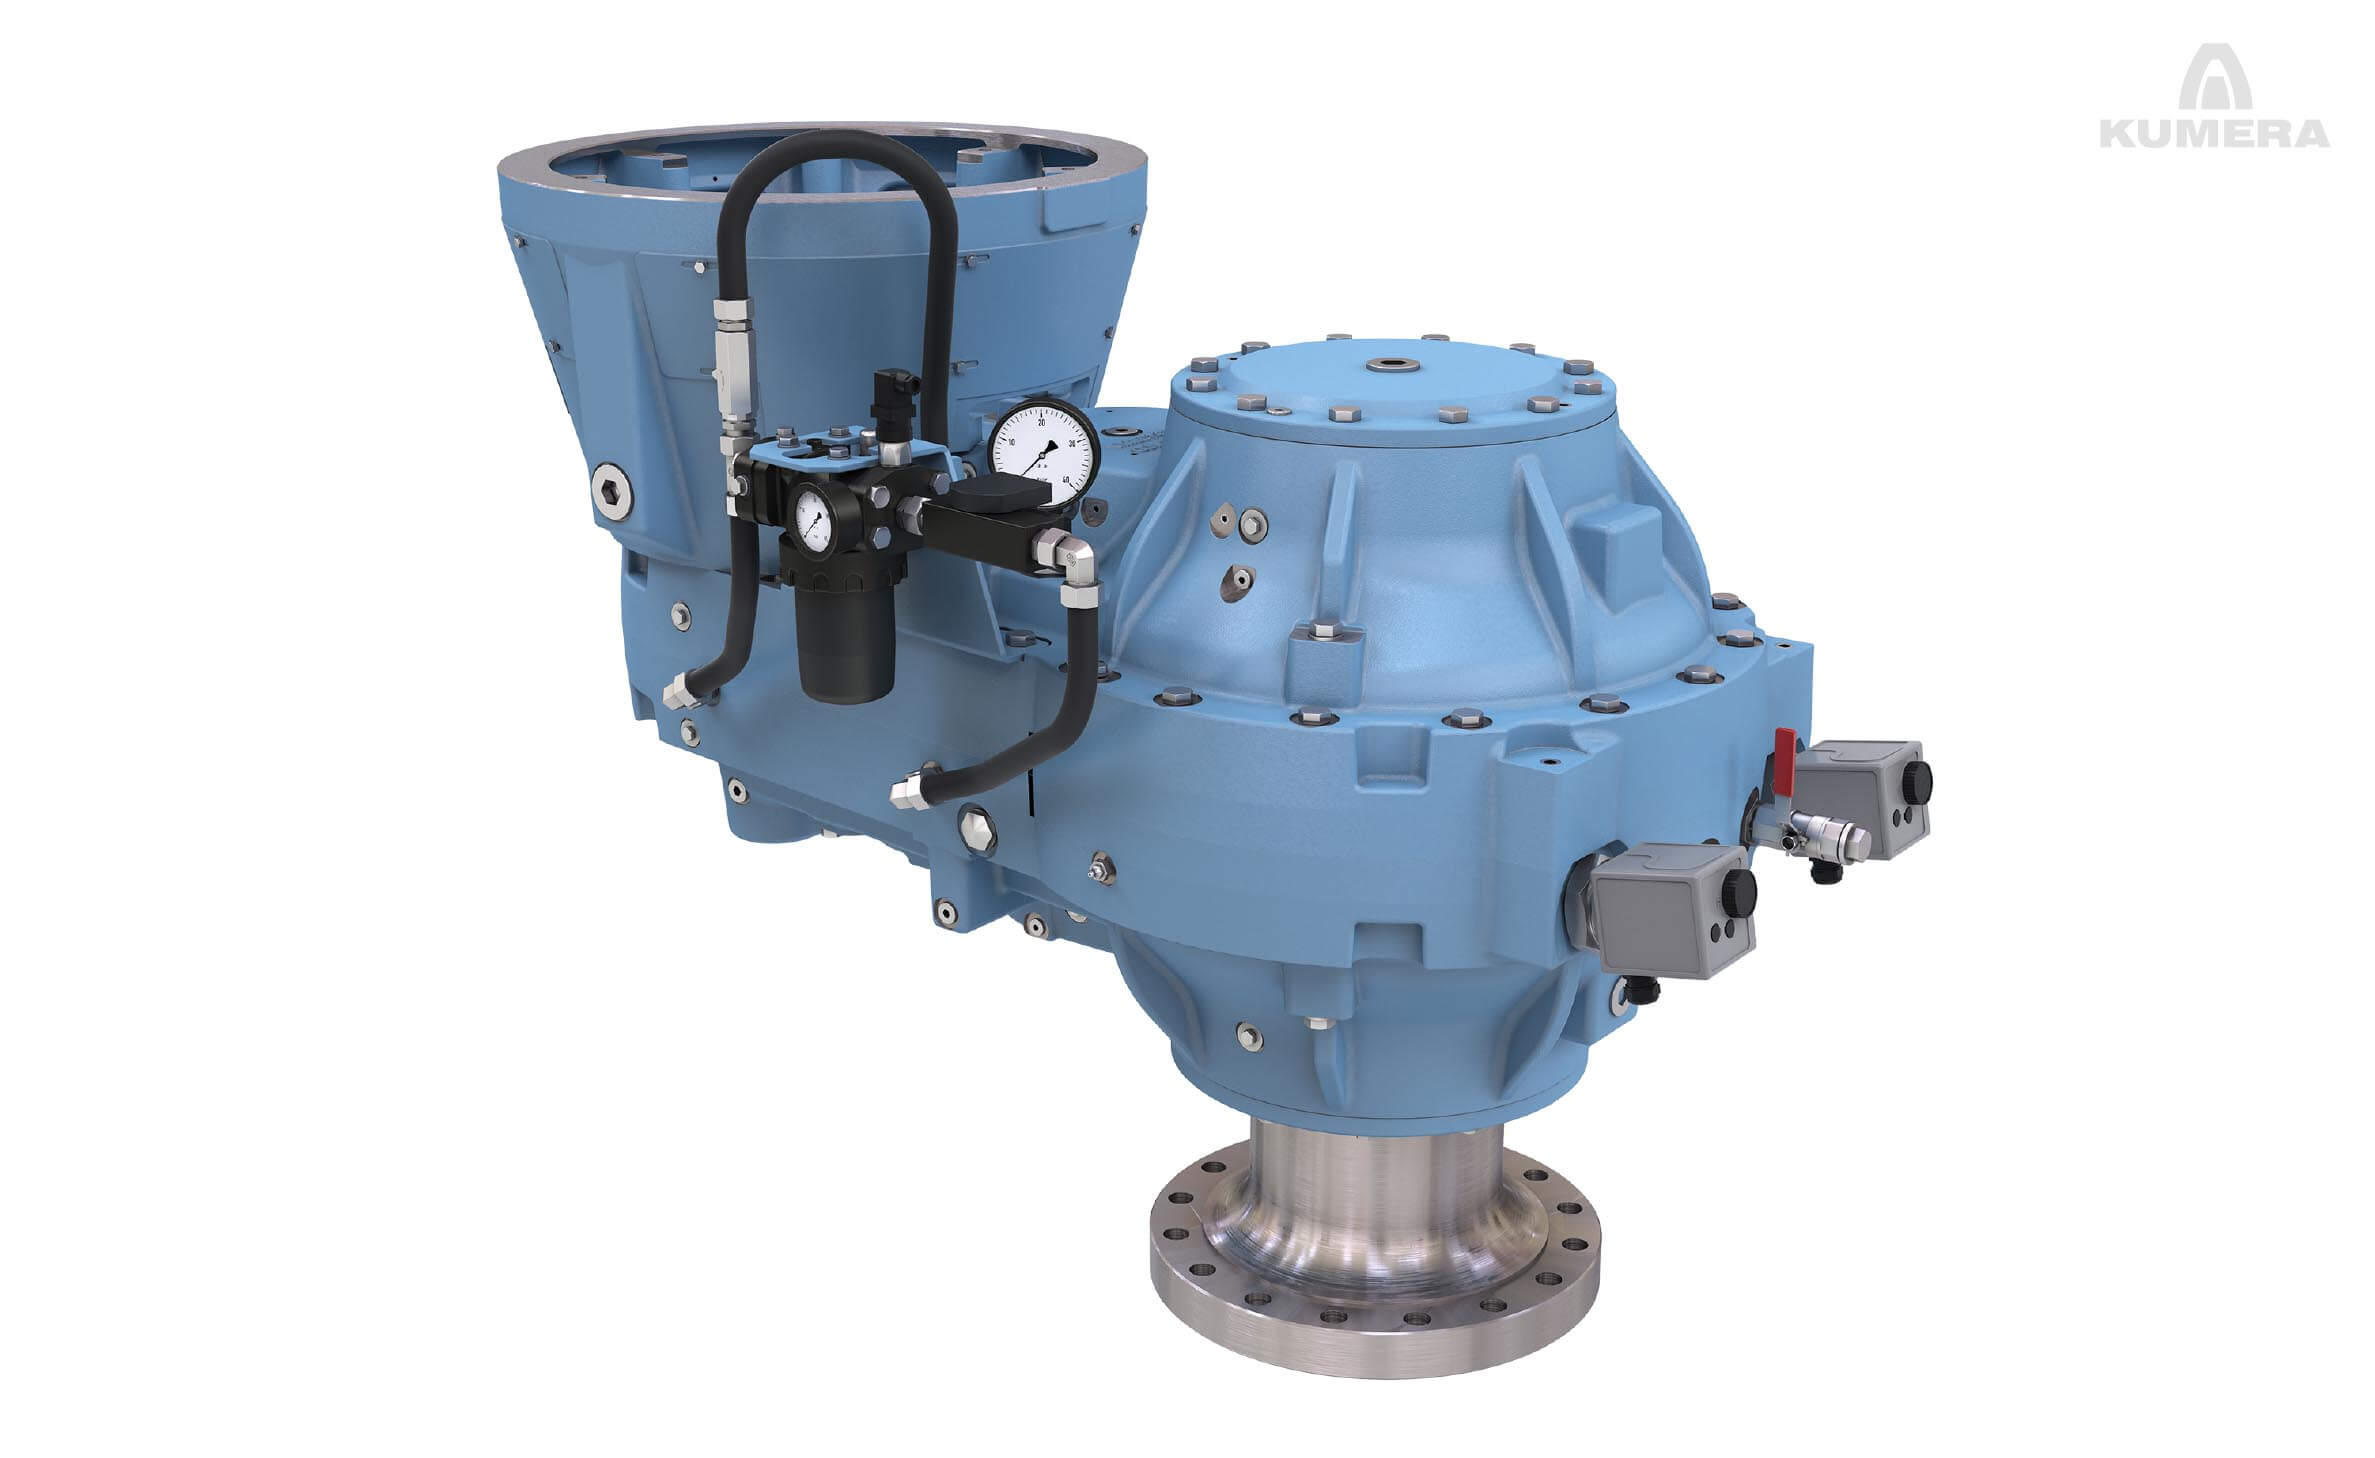 Kumera agitator drives. umera agitator drives are used widely in variable industries globally.